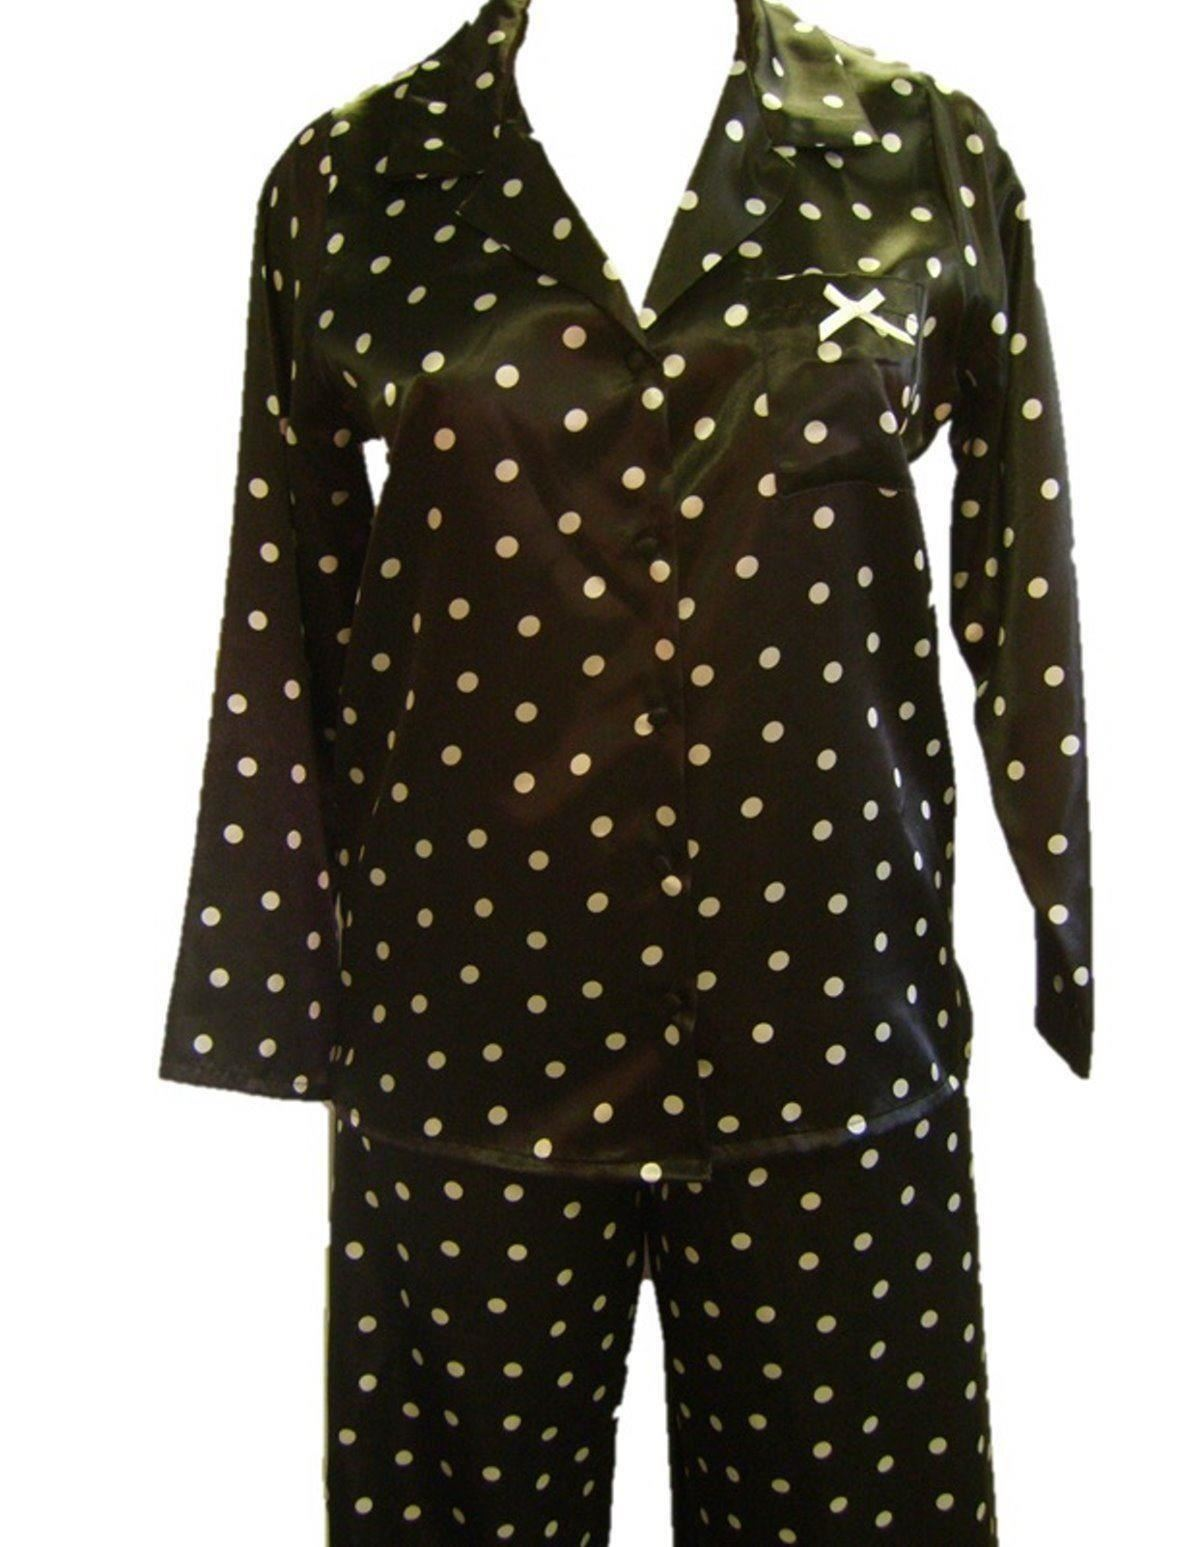 Black Silk Pajamas: Ladies Womens Black Satin Pyjamas PJs Pajama Set Nightwear